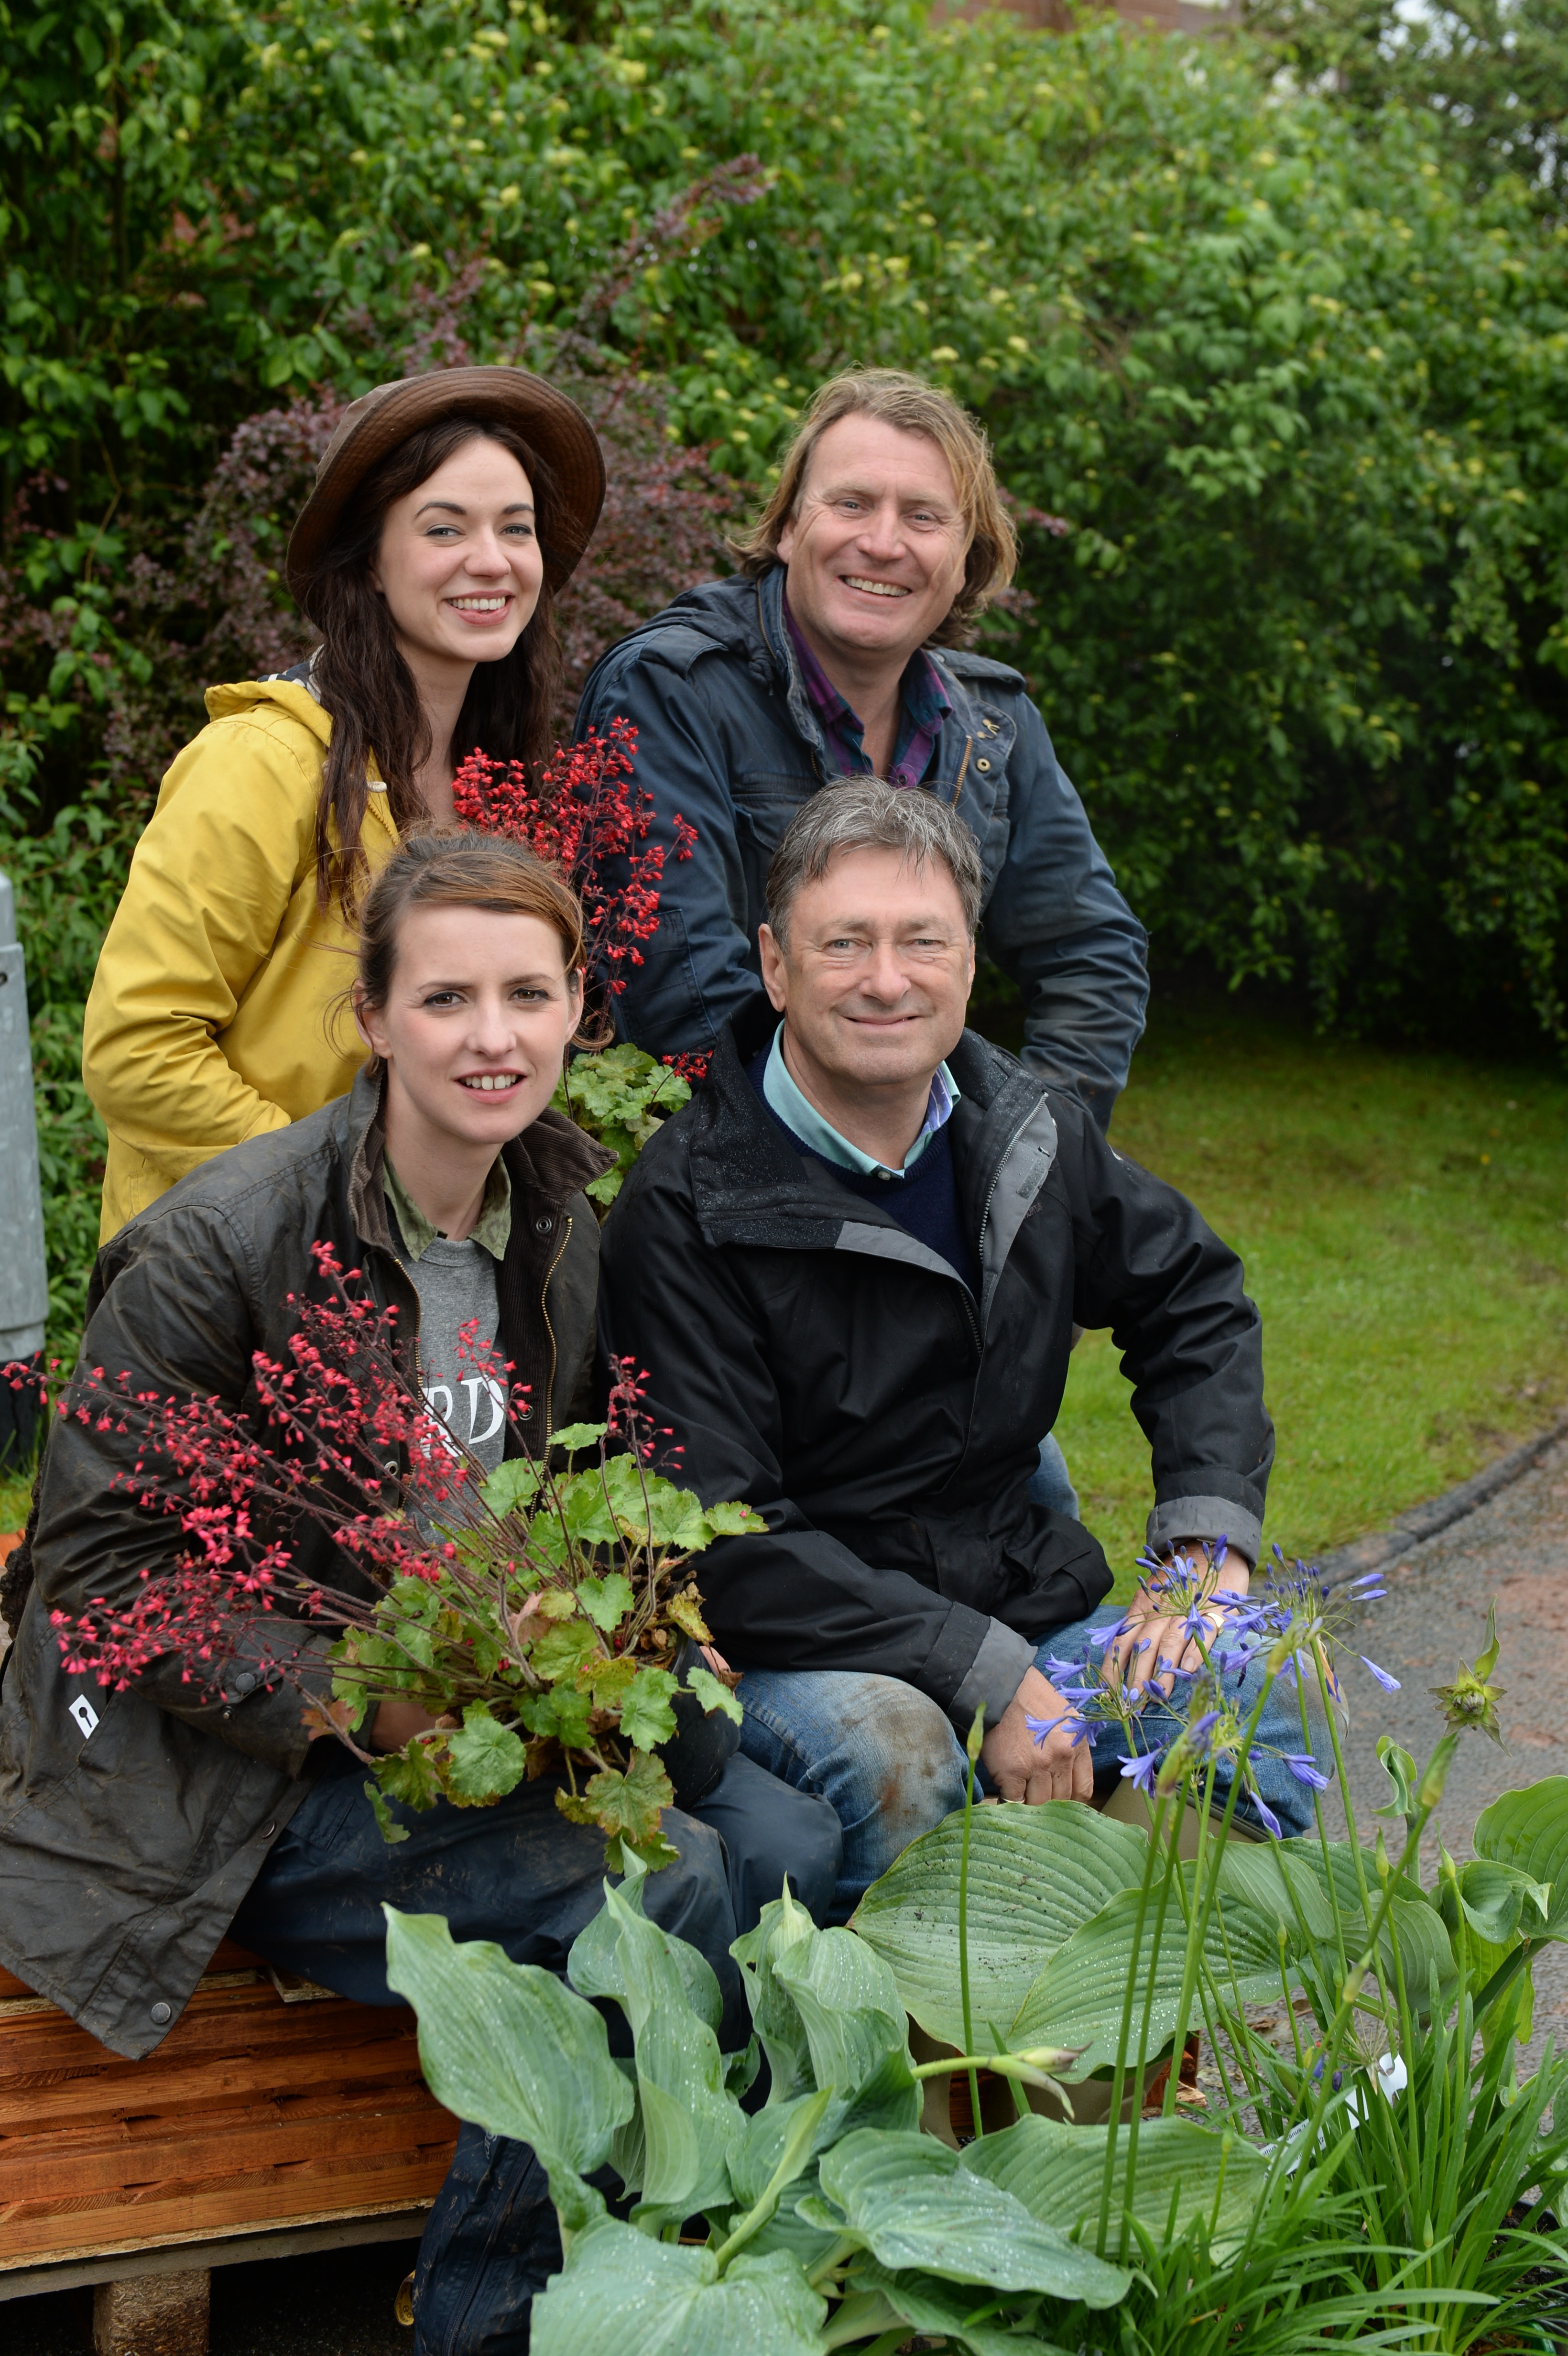 Alan Titchmarsh Set To Makeover Gardens For Amazing People - Amateur Gardening-3757